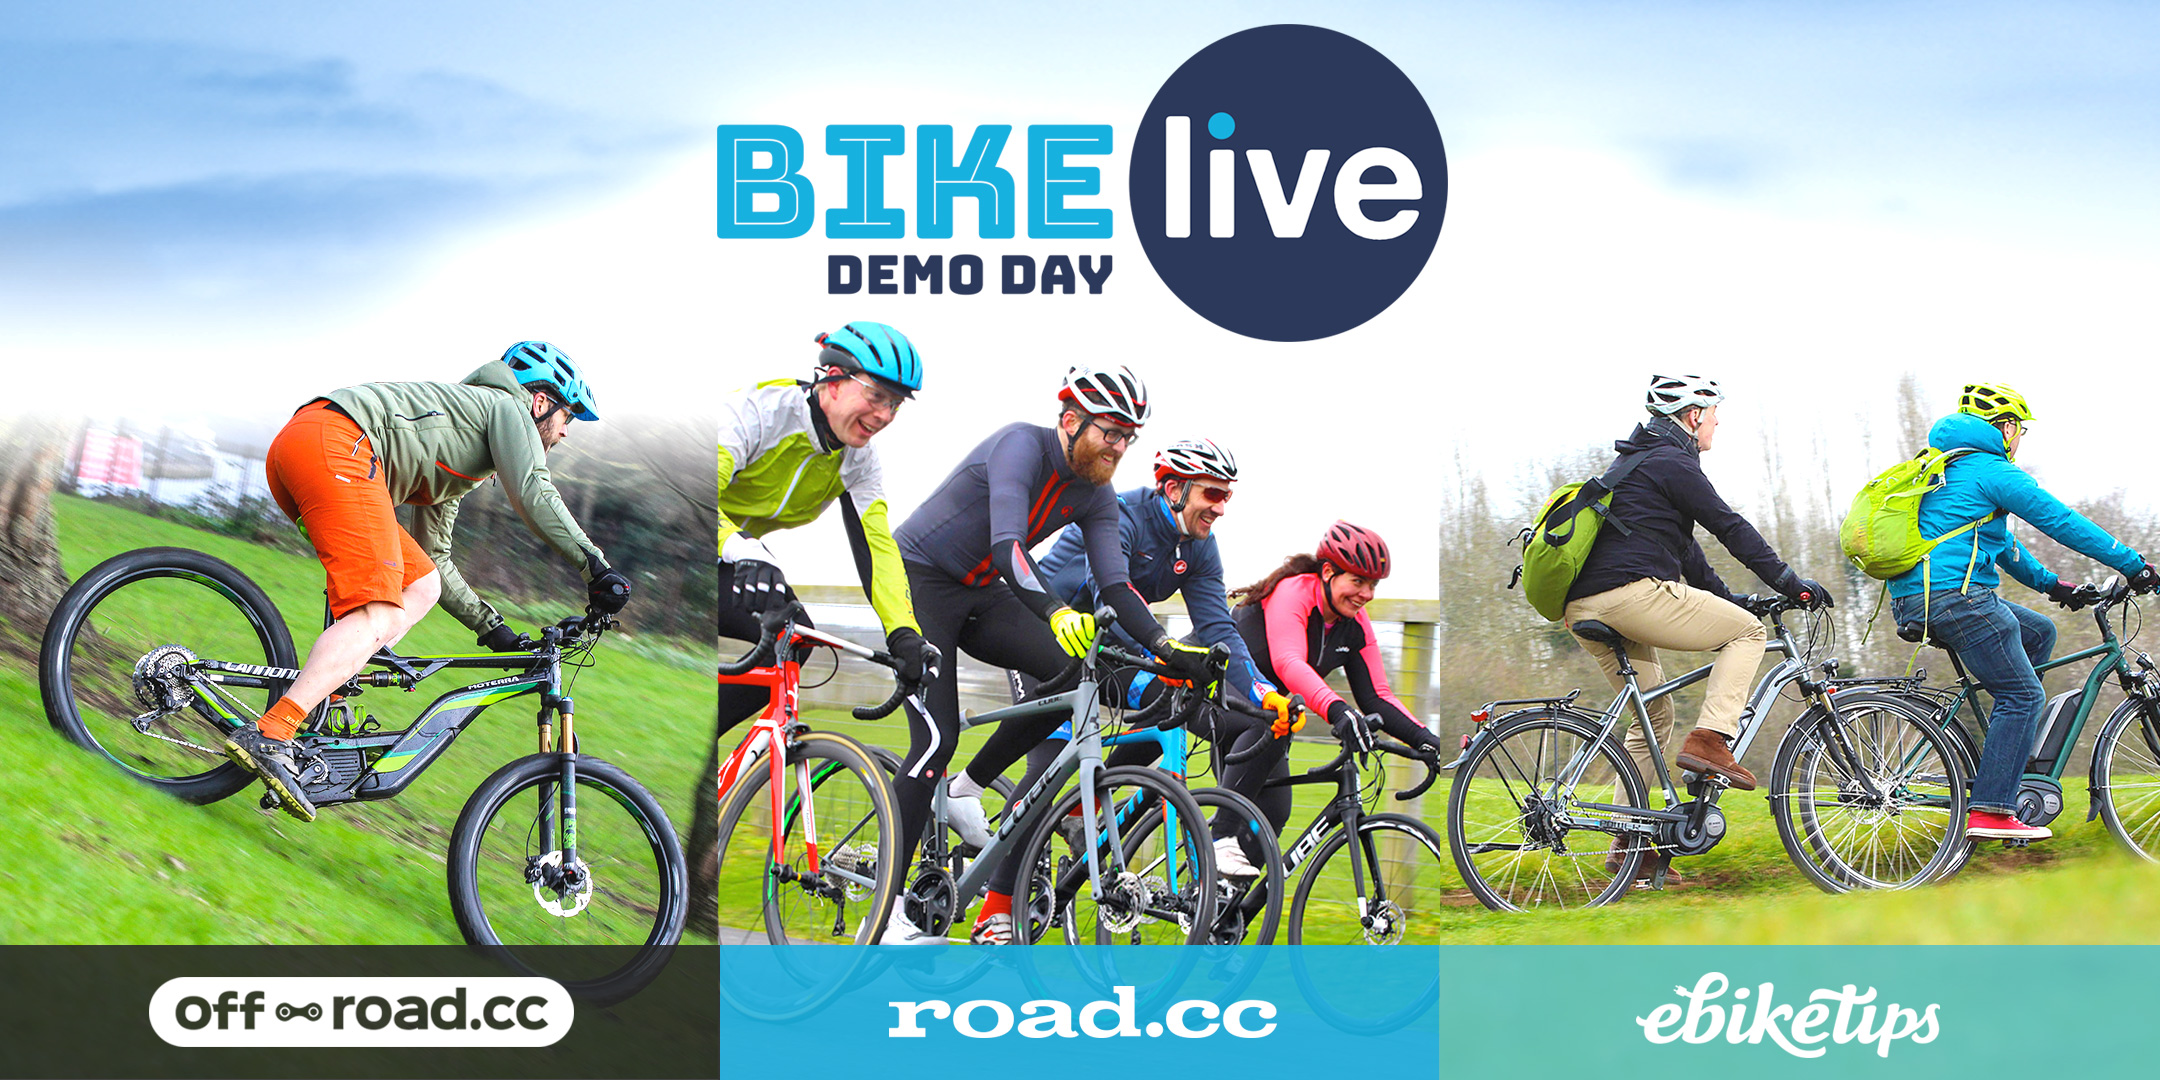 BikeLive London demo day Mar 2018 from road.cc, ebiketips and off-road.cc